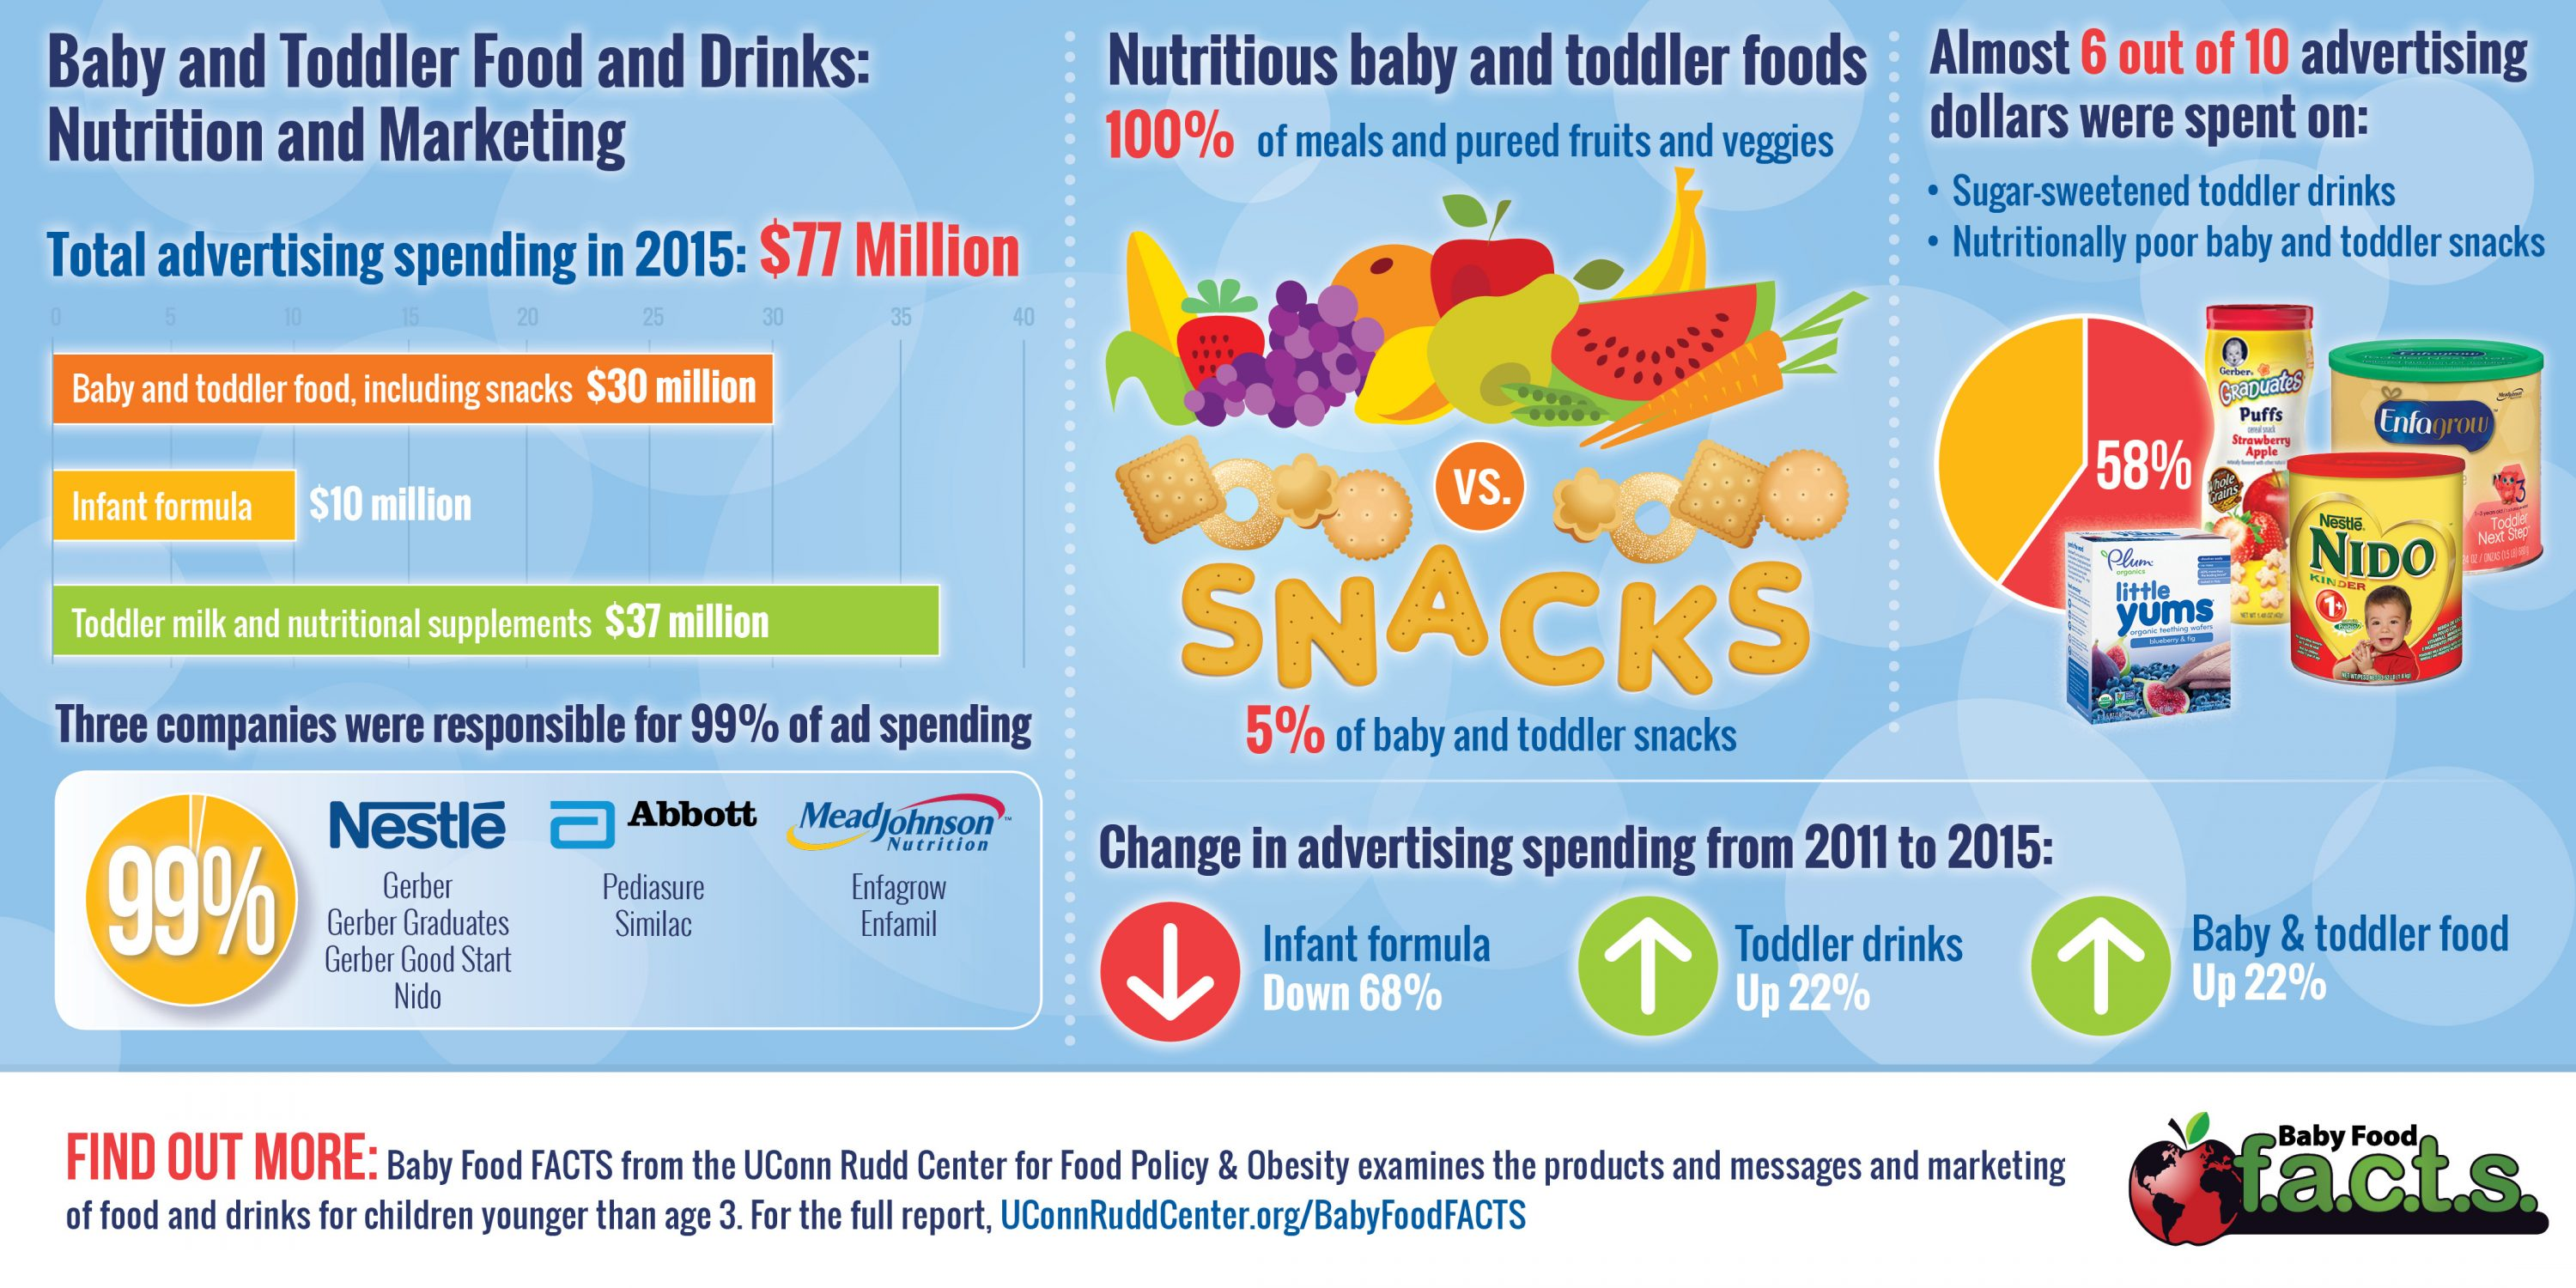 Baby and Toddler Food and Drinks: Nutrition and Marketing. (UConn Rudd Center Illustration)